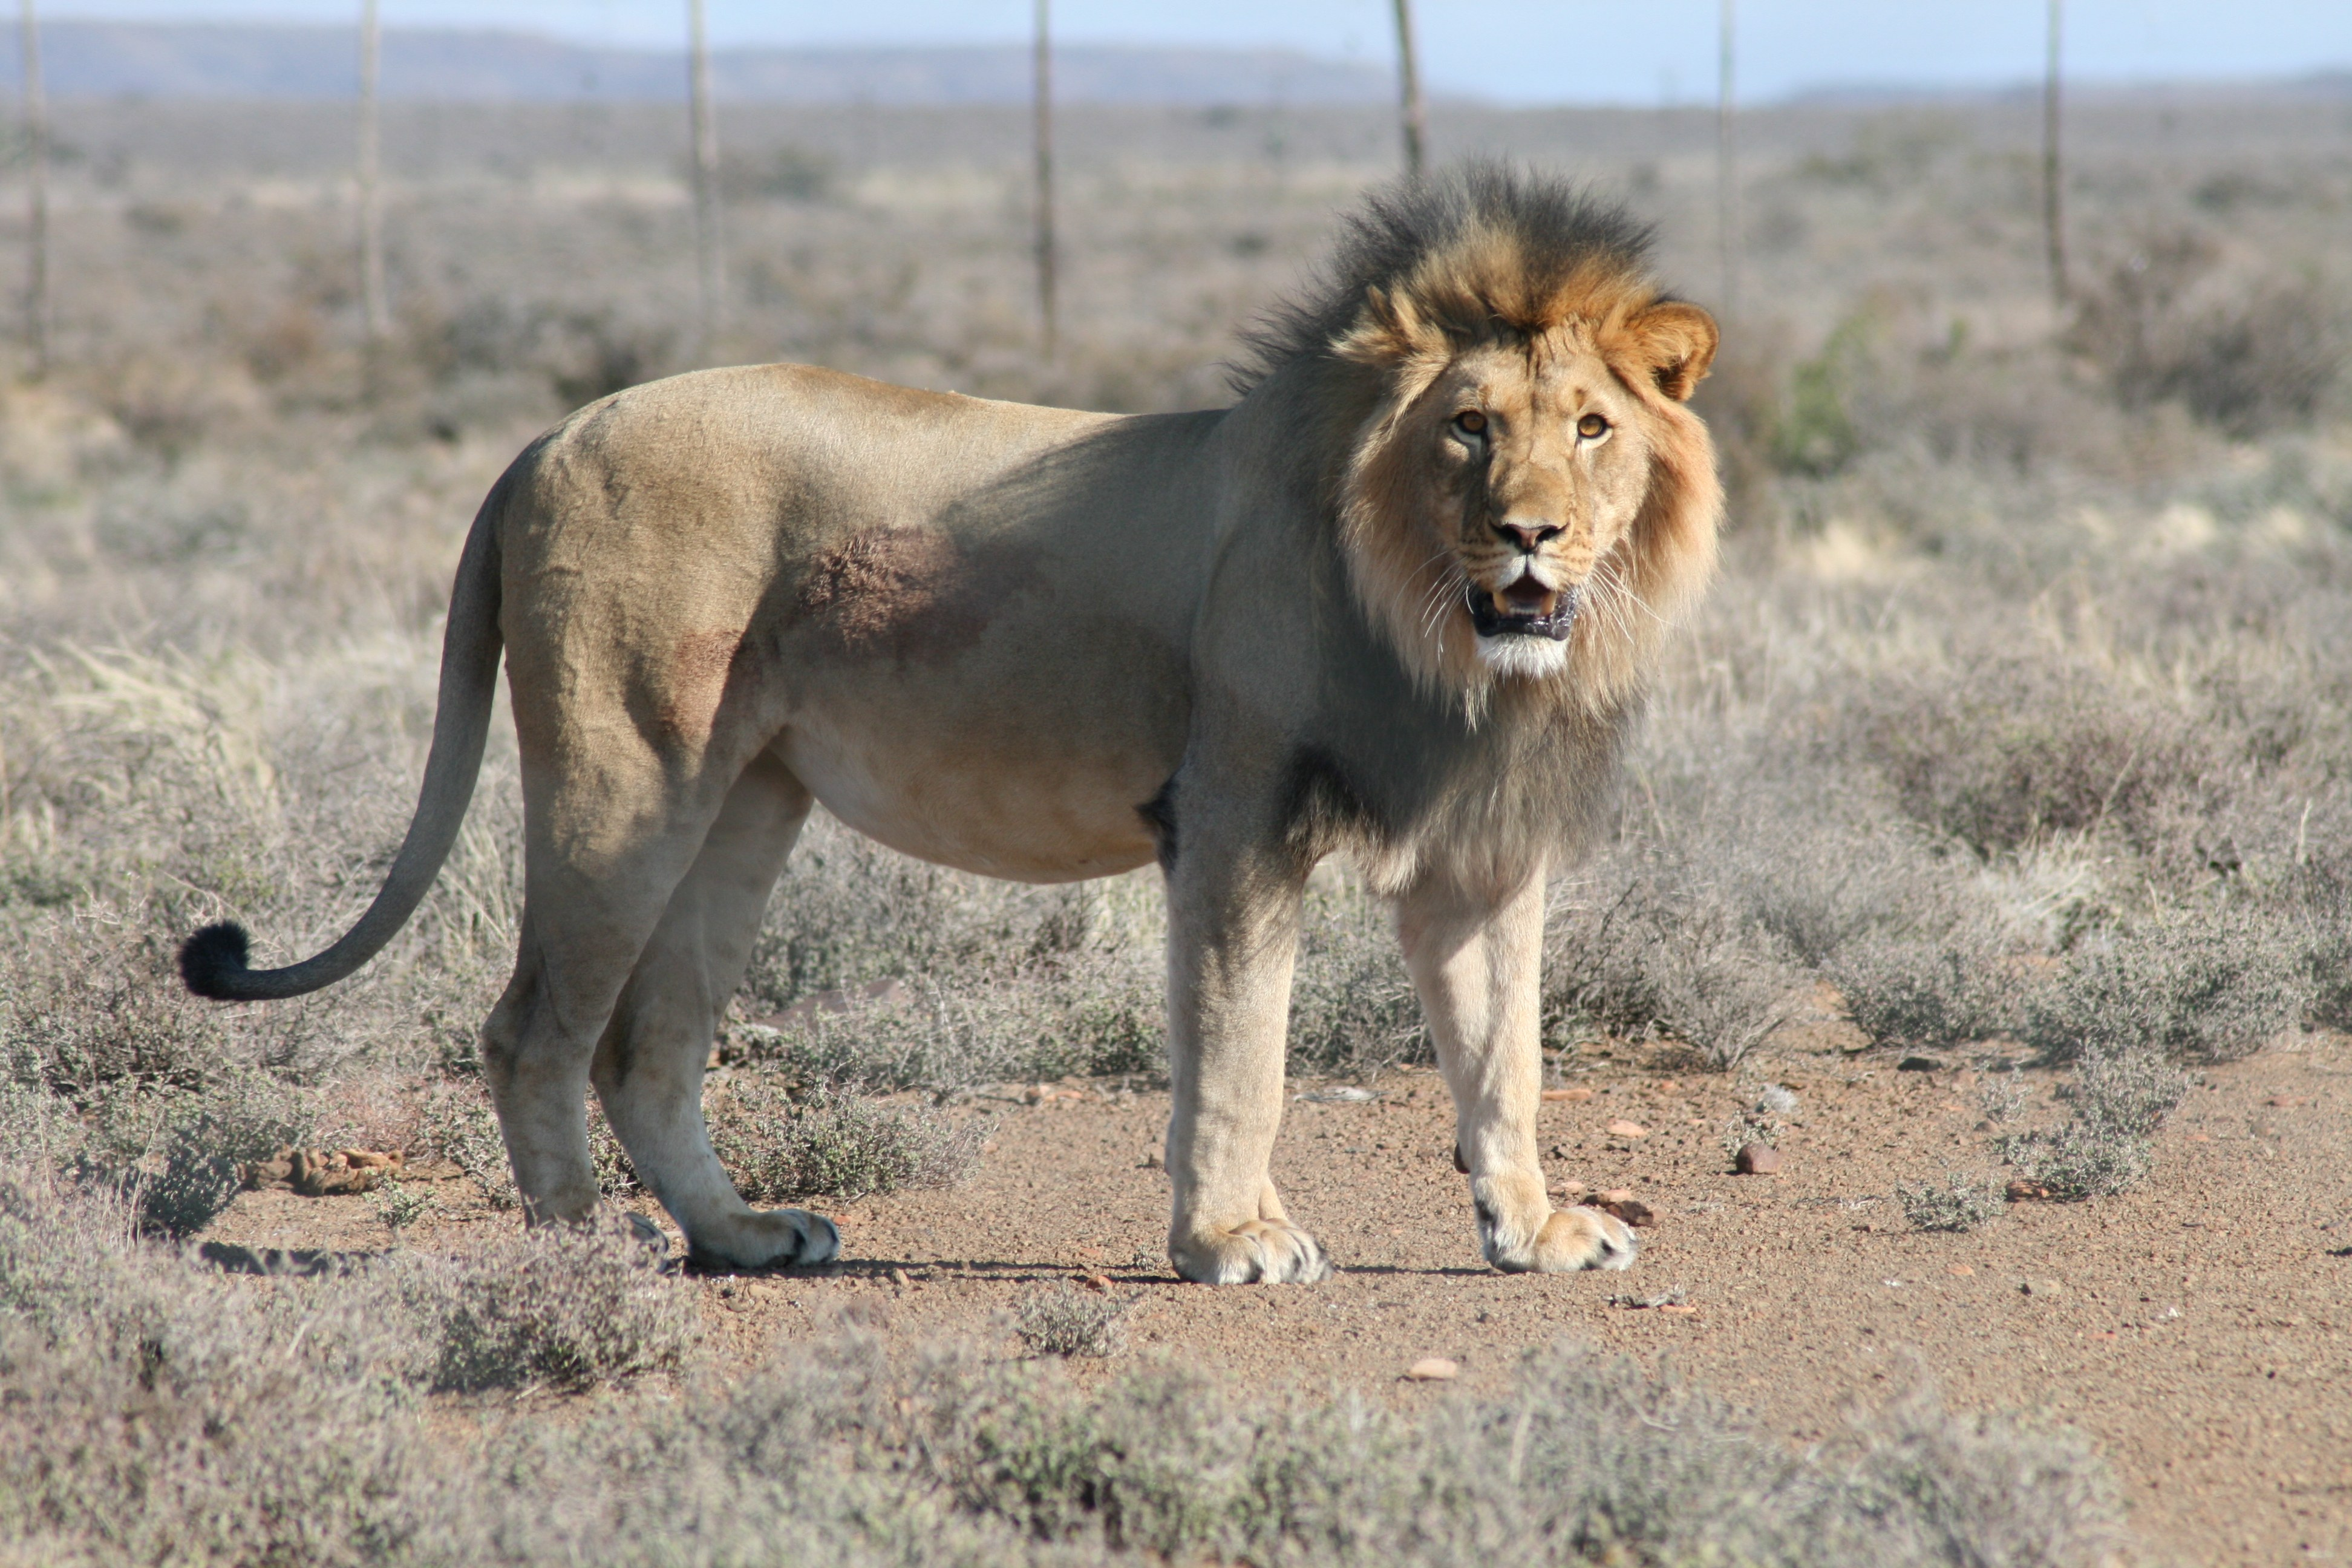 sylvester the lion A Lion In South Africa Has Been Arrested And Sent To Jail After Escaping From The Zoo